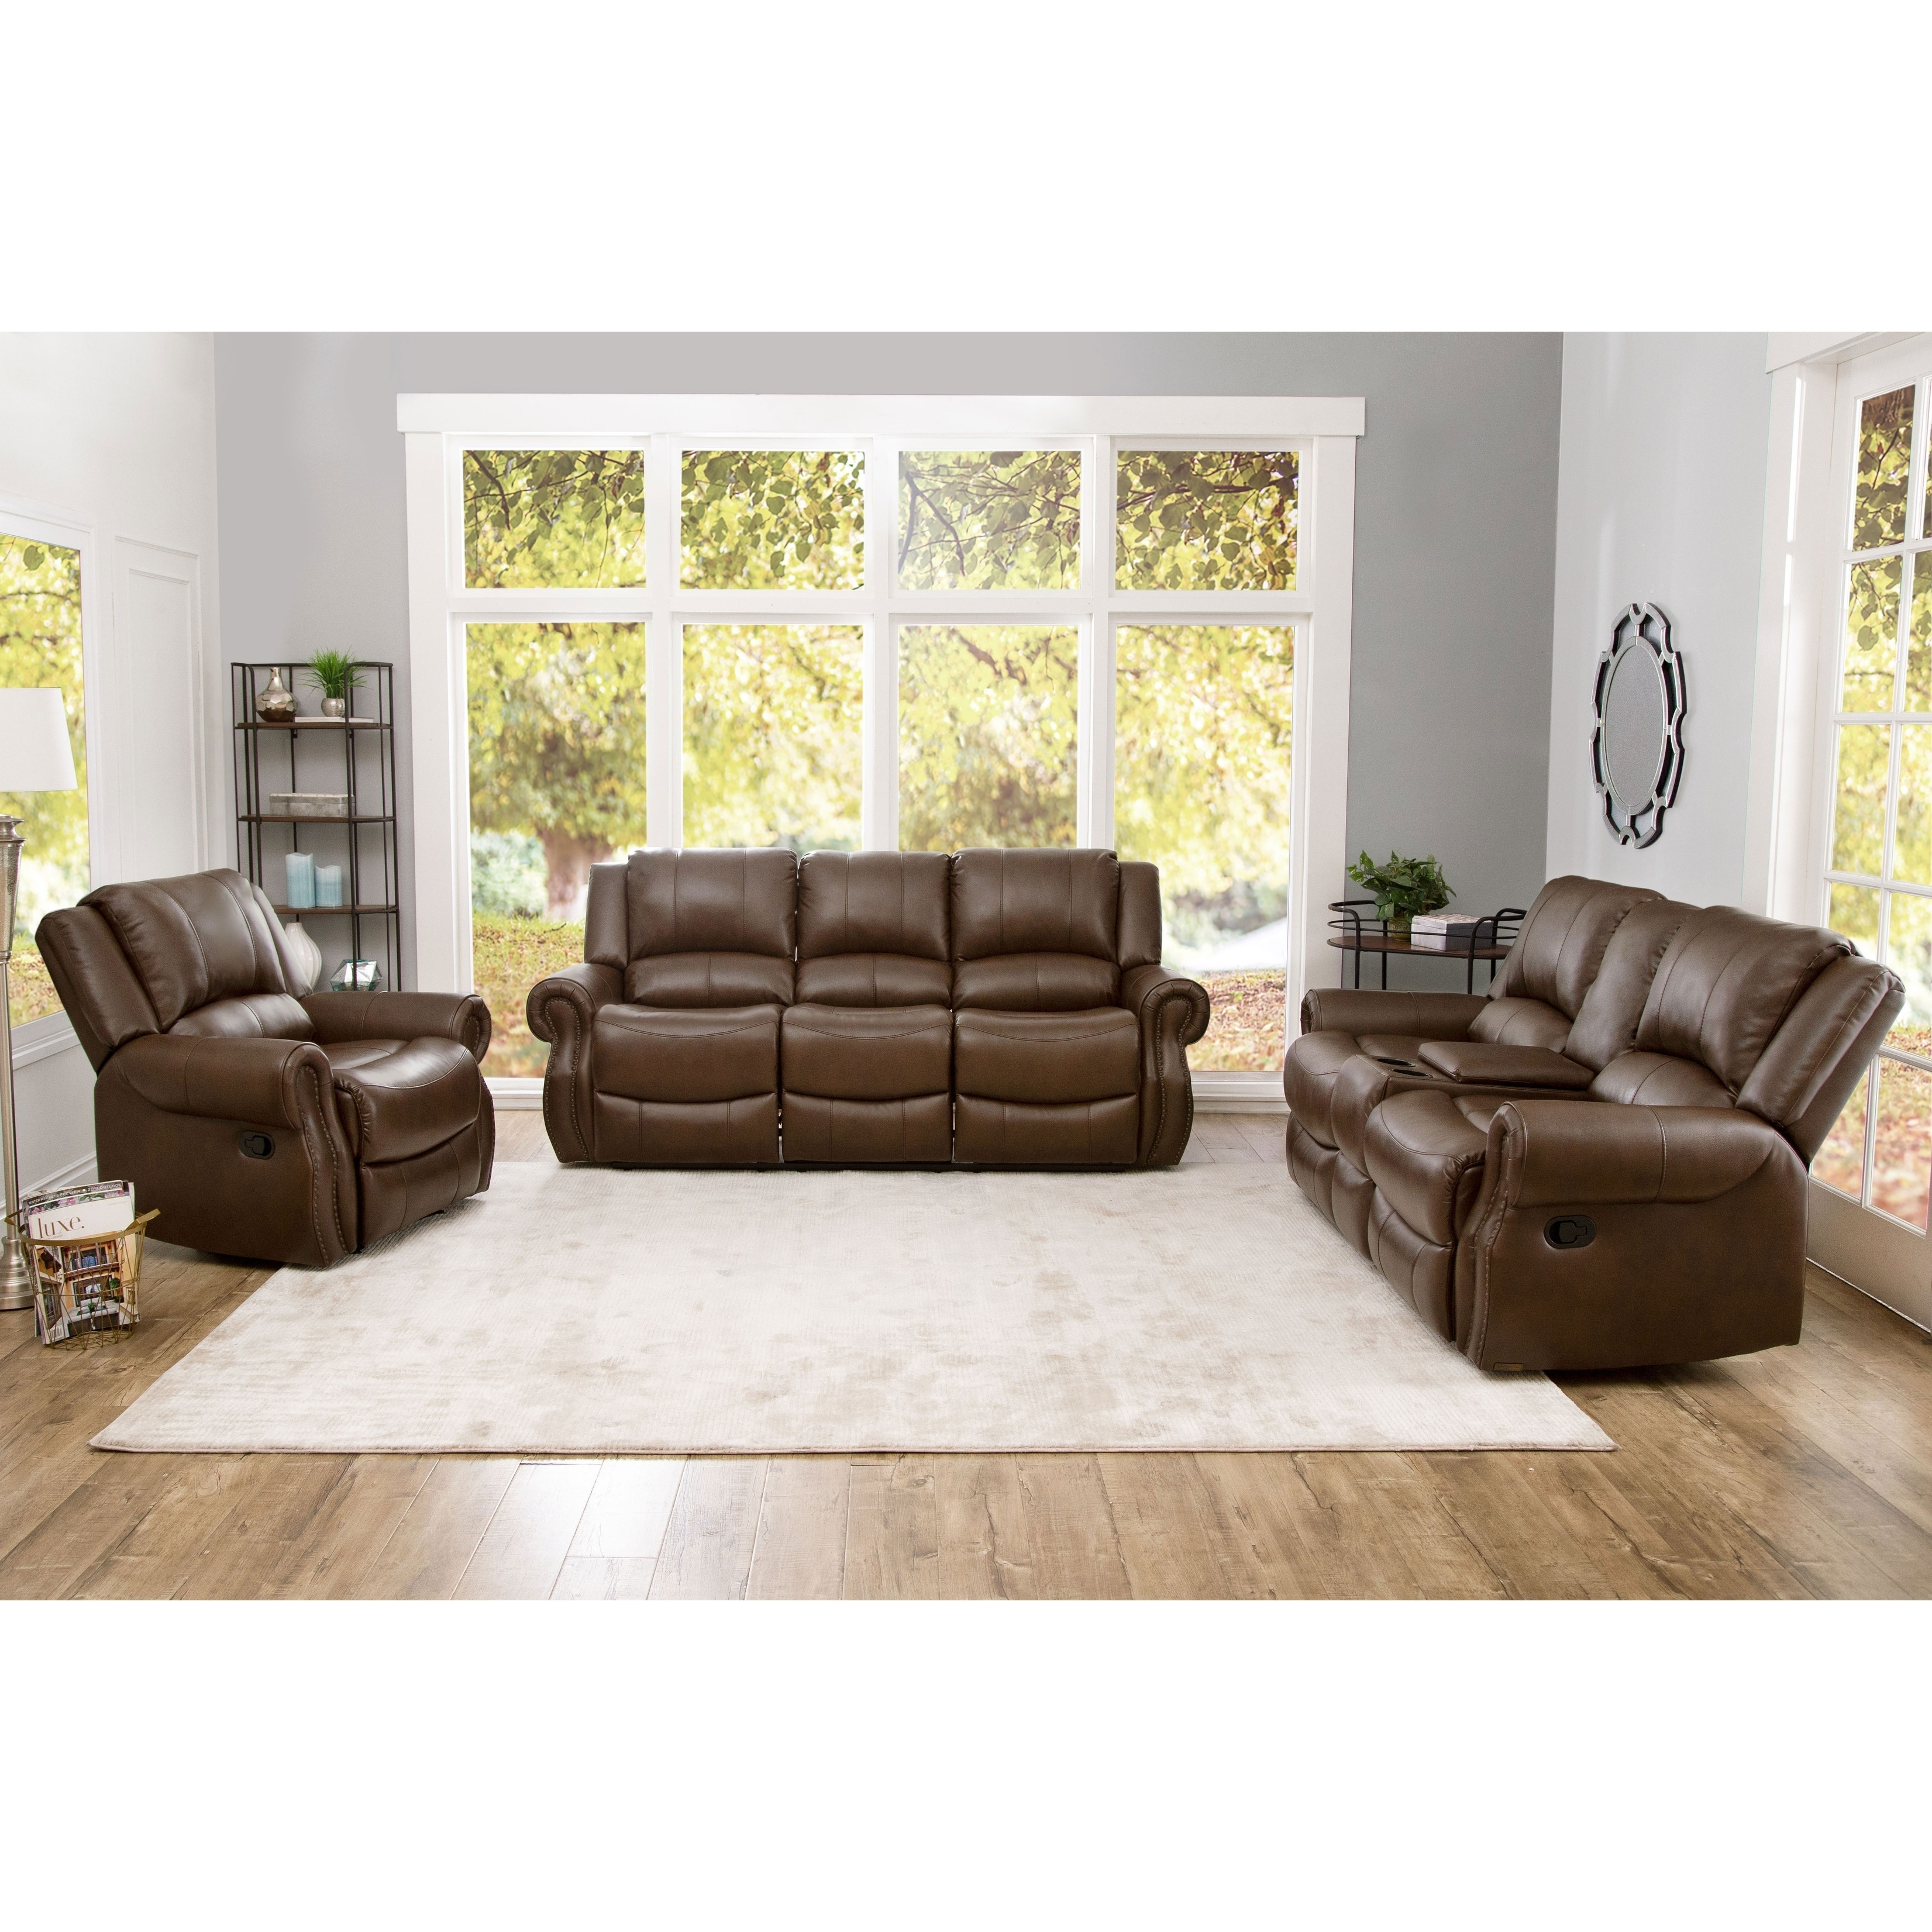 living room set leather table decorations ideas shop abbyson calabasas mesa brown 3 piece reclining